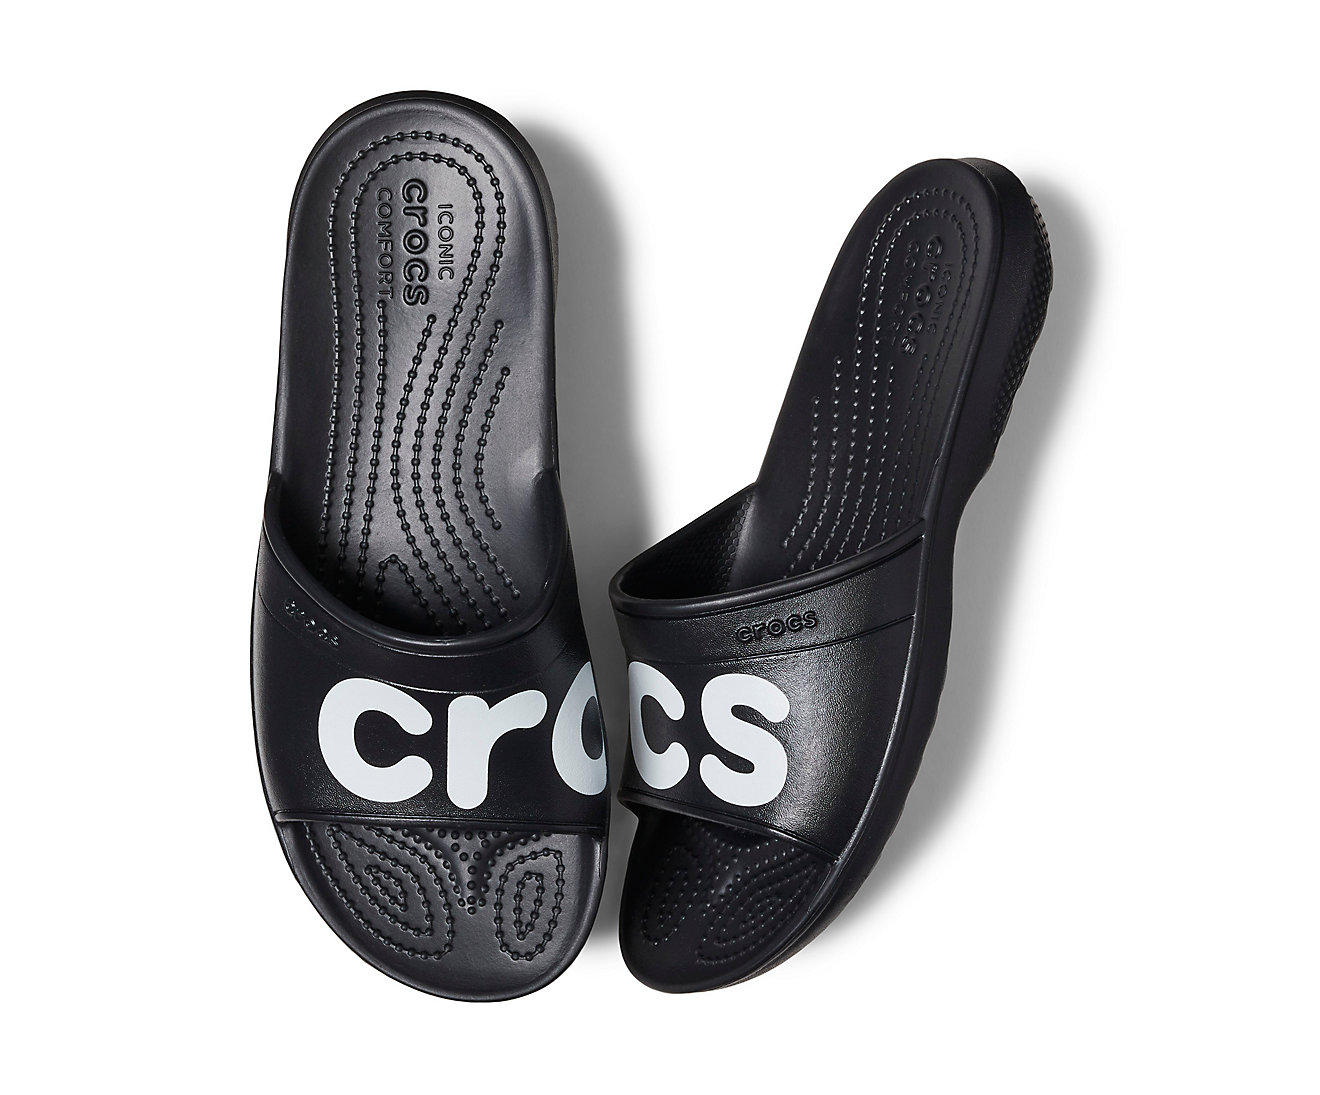 e76a7f14346 Crocs černé unisex pantofle Classic Graphic Slide Black White - M4 W6